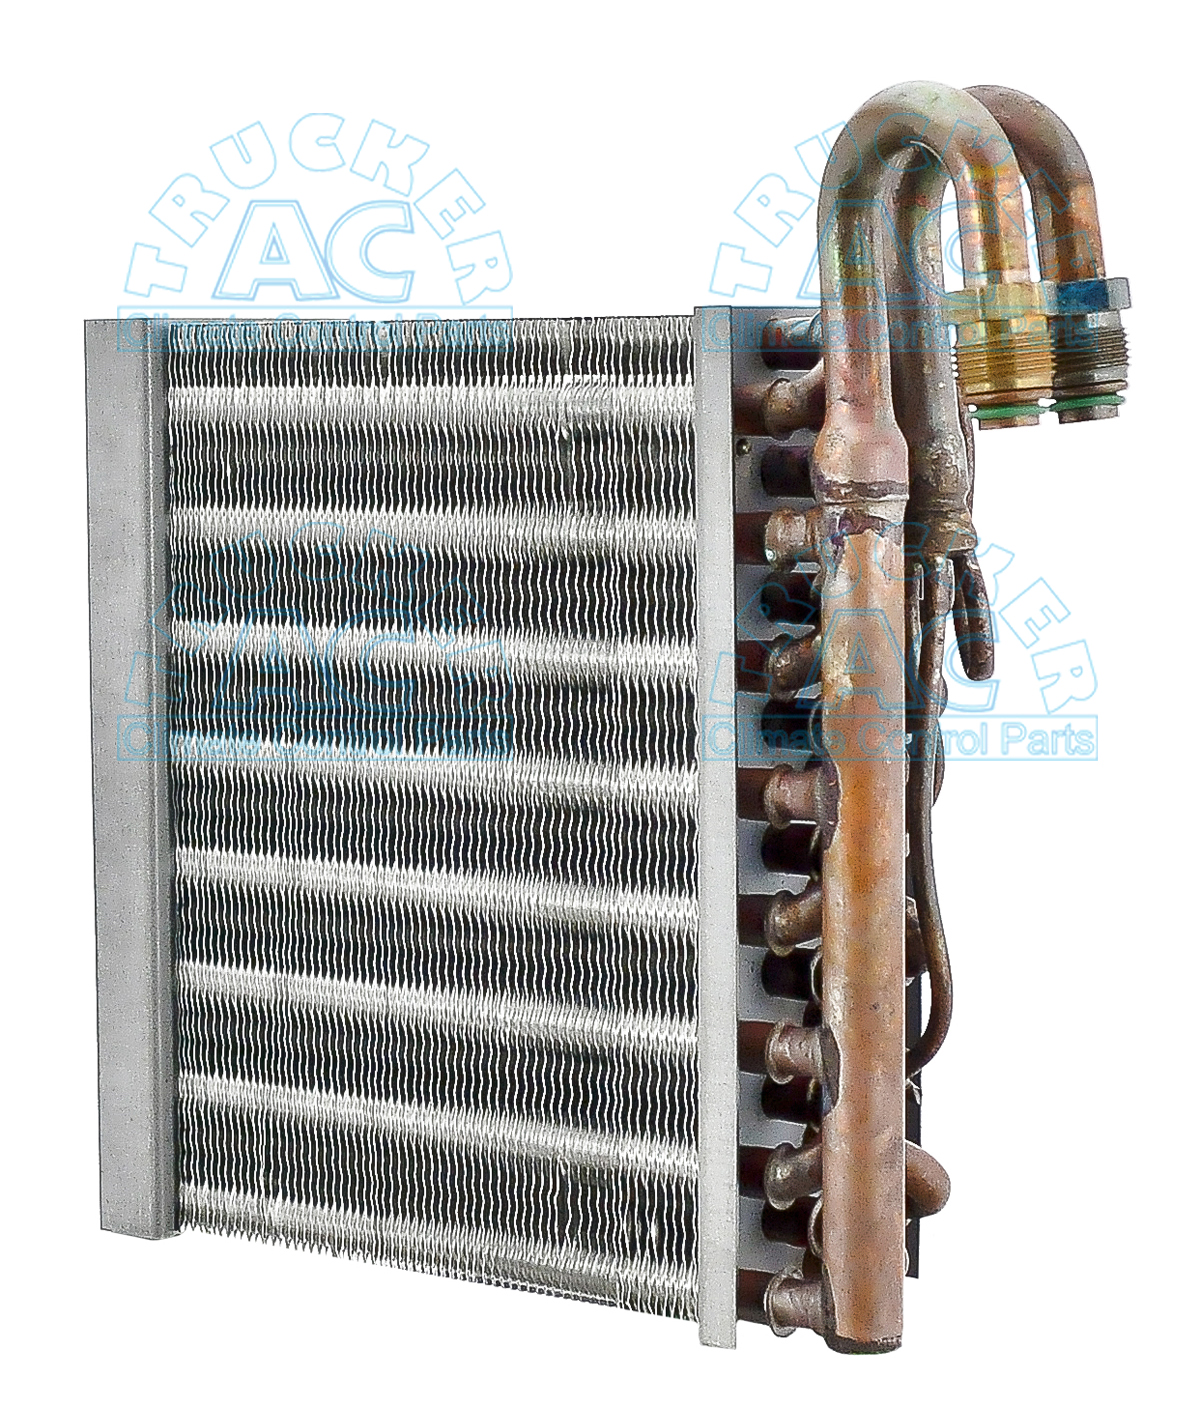 fld112 � on a 1997 fl60 fuse box: freightliner a/c evaporator style tf  oem#